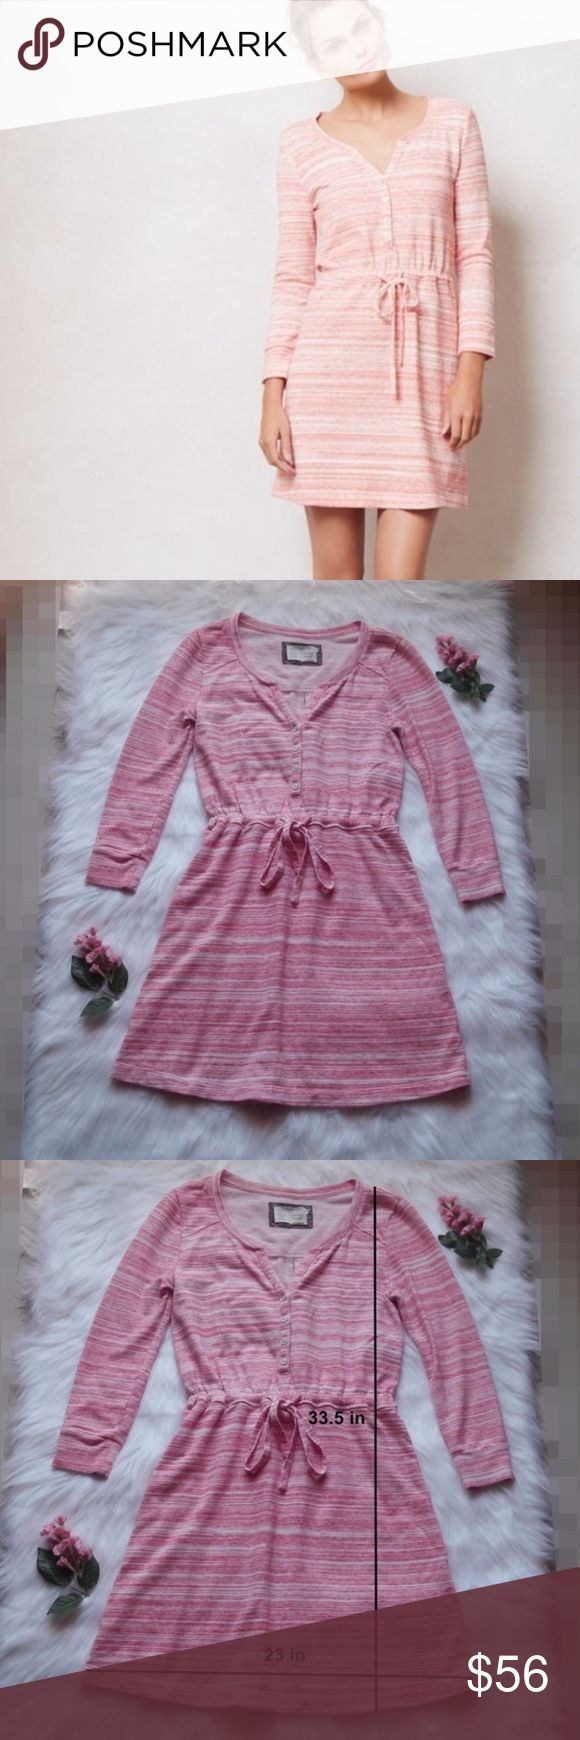 Anthro Saturday Sunday Pink Poppy Space Dye Dress Anthro Saturday Sunday Pink Poppy Space Dye Dress. Size XS. Long sleeve dress with adjustable draw string waist. Comfy fabric: 60% Cotton 28% Polyester 12% Spandex. Like new! Anthropologie Dresses